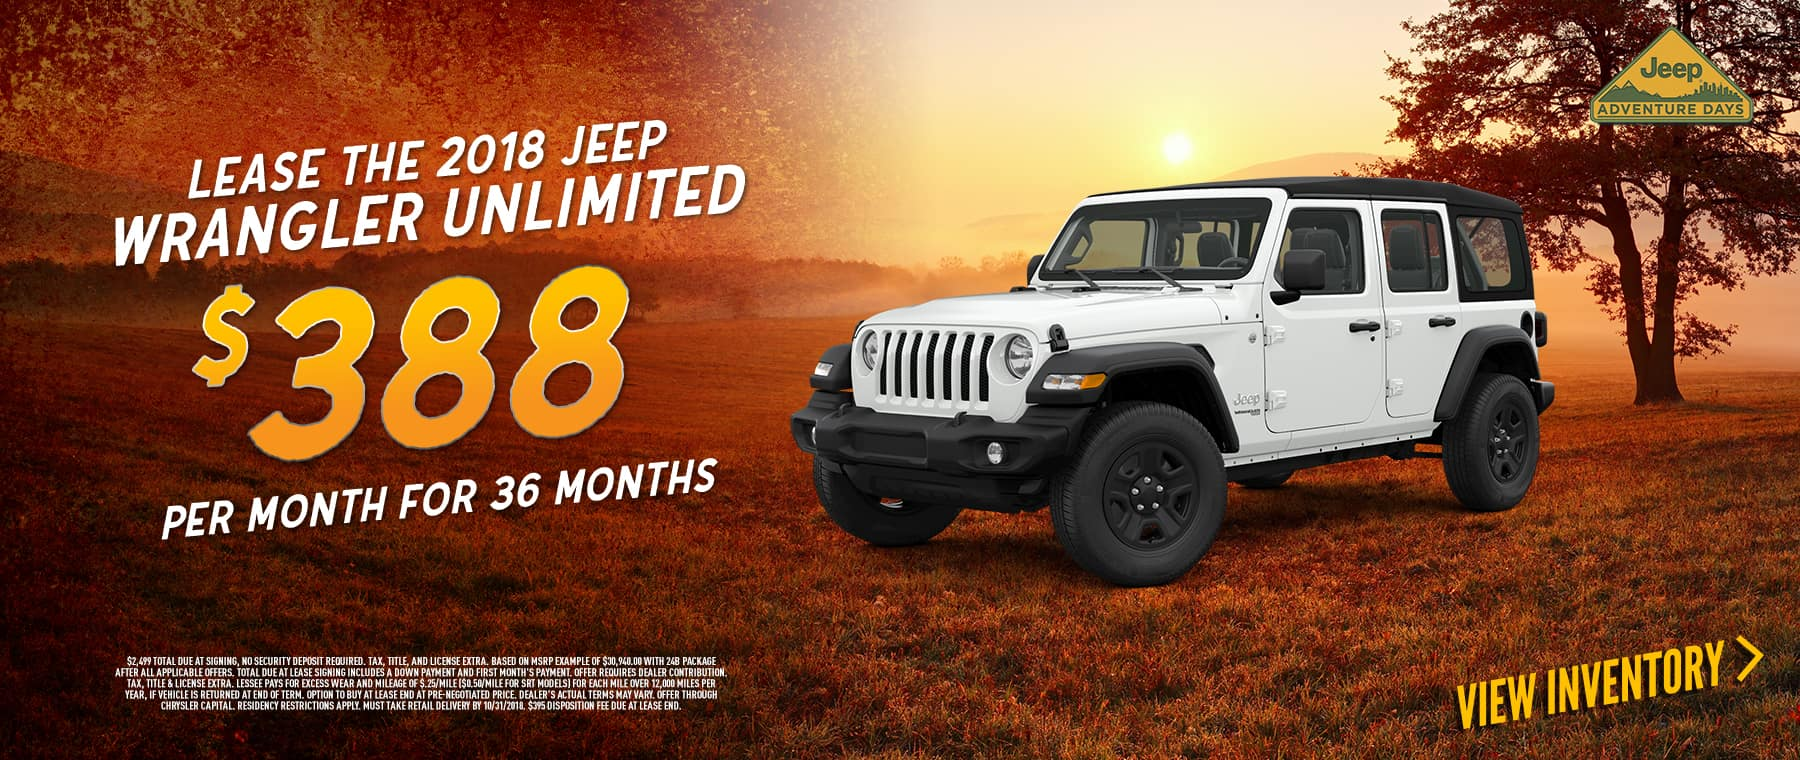 Lease 2018 Jeep Wrangler For 388 Per Month